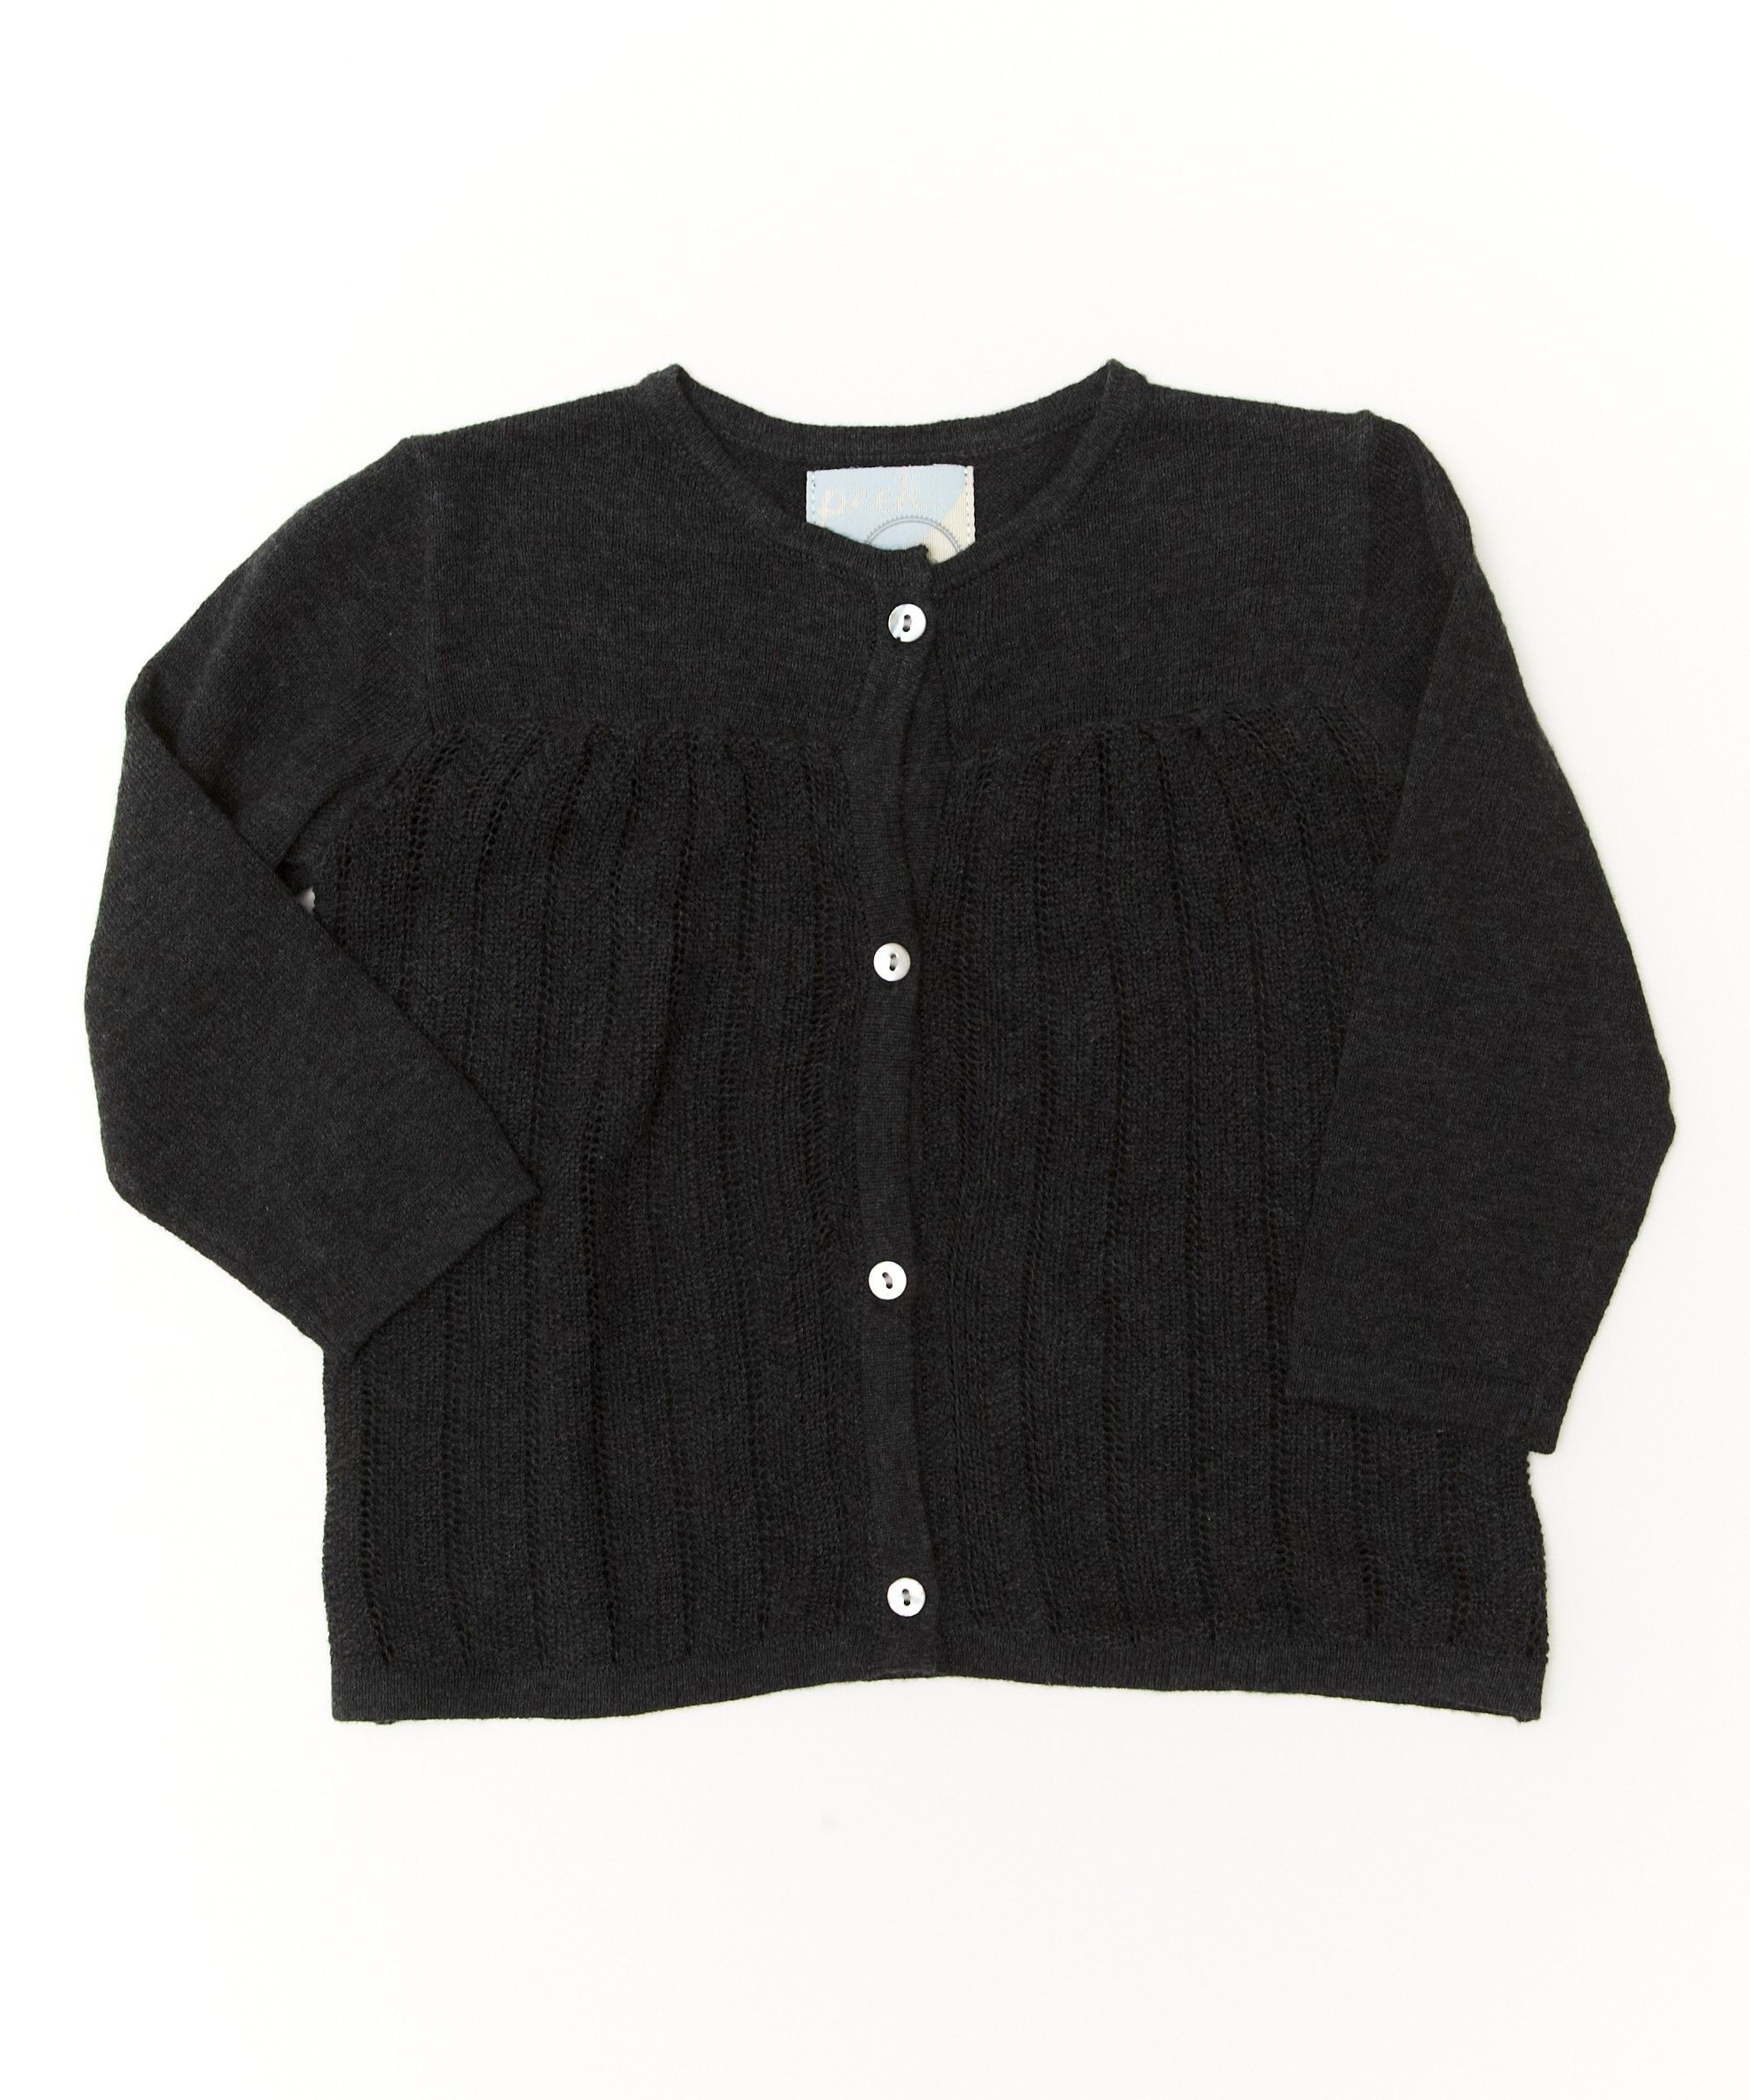 797c09bec050 Baby Lillian Cardigan - Sweaters - Shop - baby girls